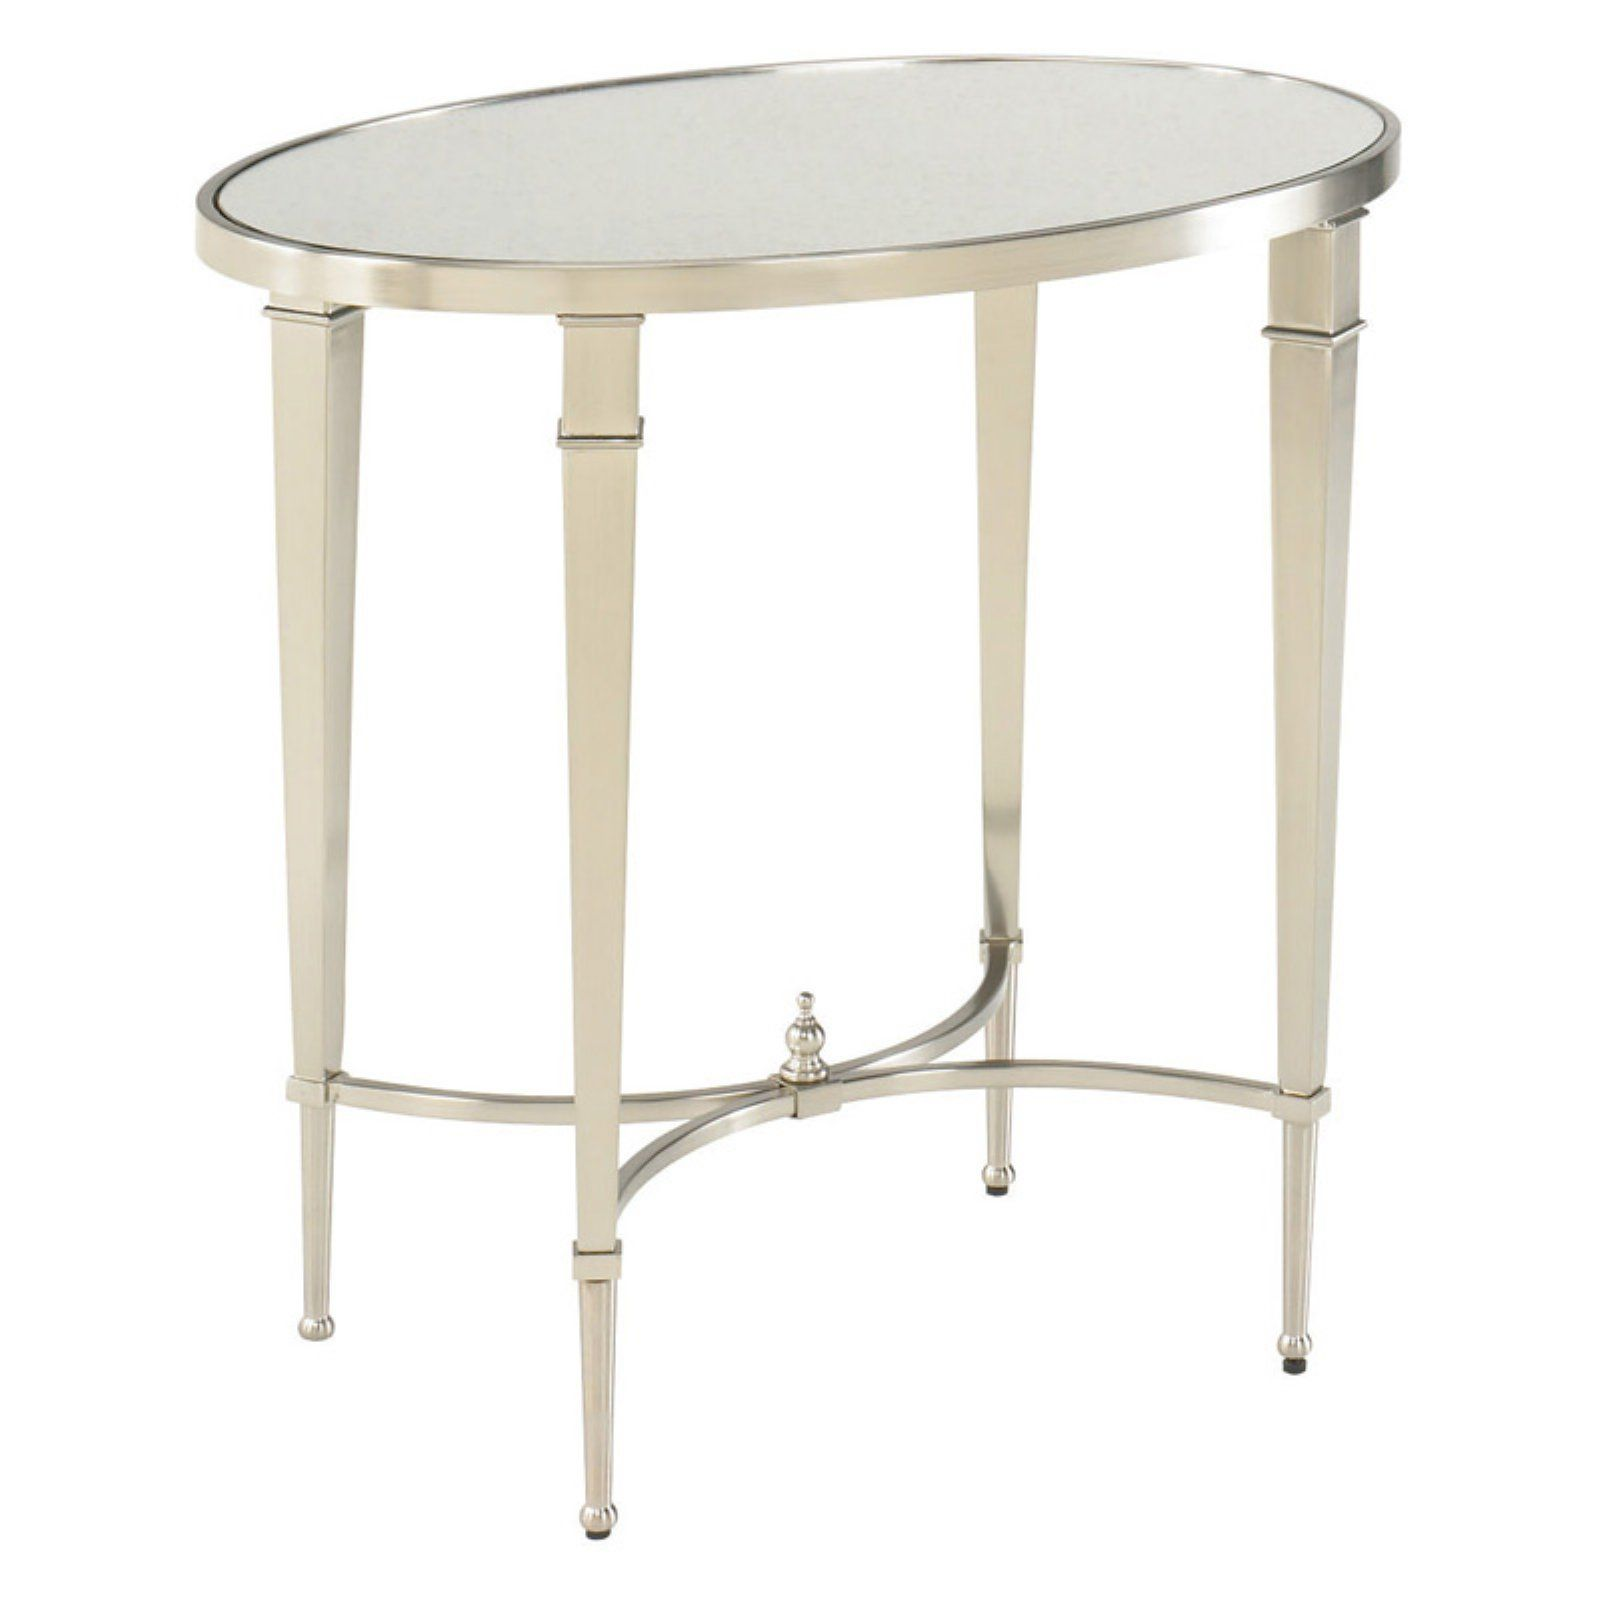 Hammary Mallory Oval End Table End Tables Mission Style End Tables Table